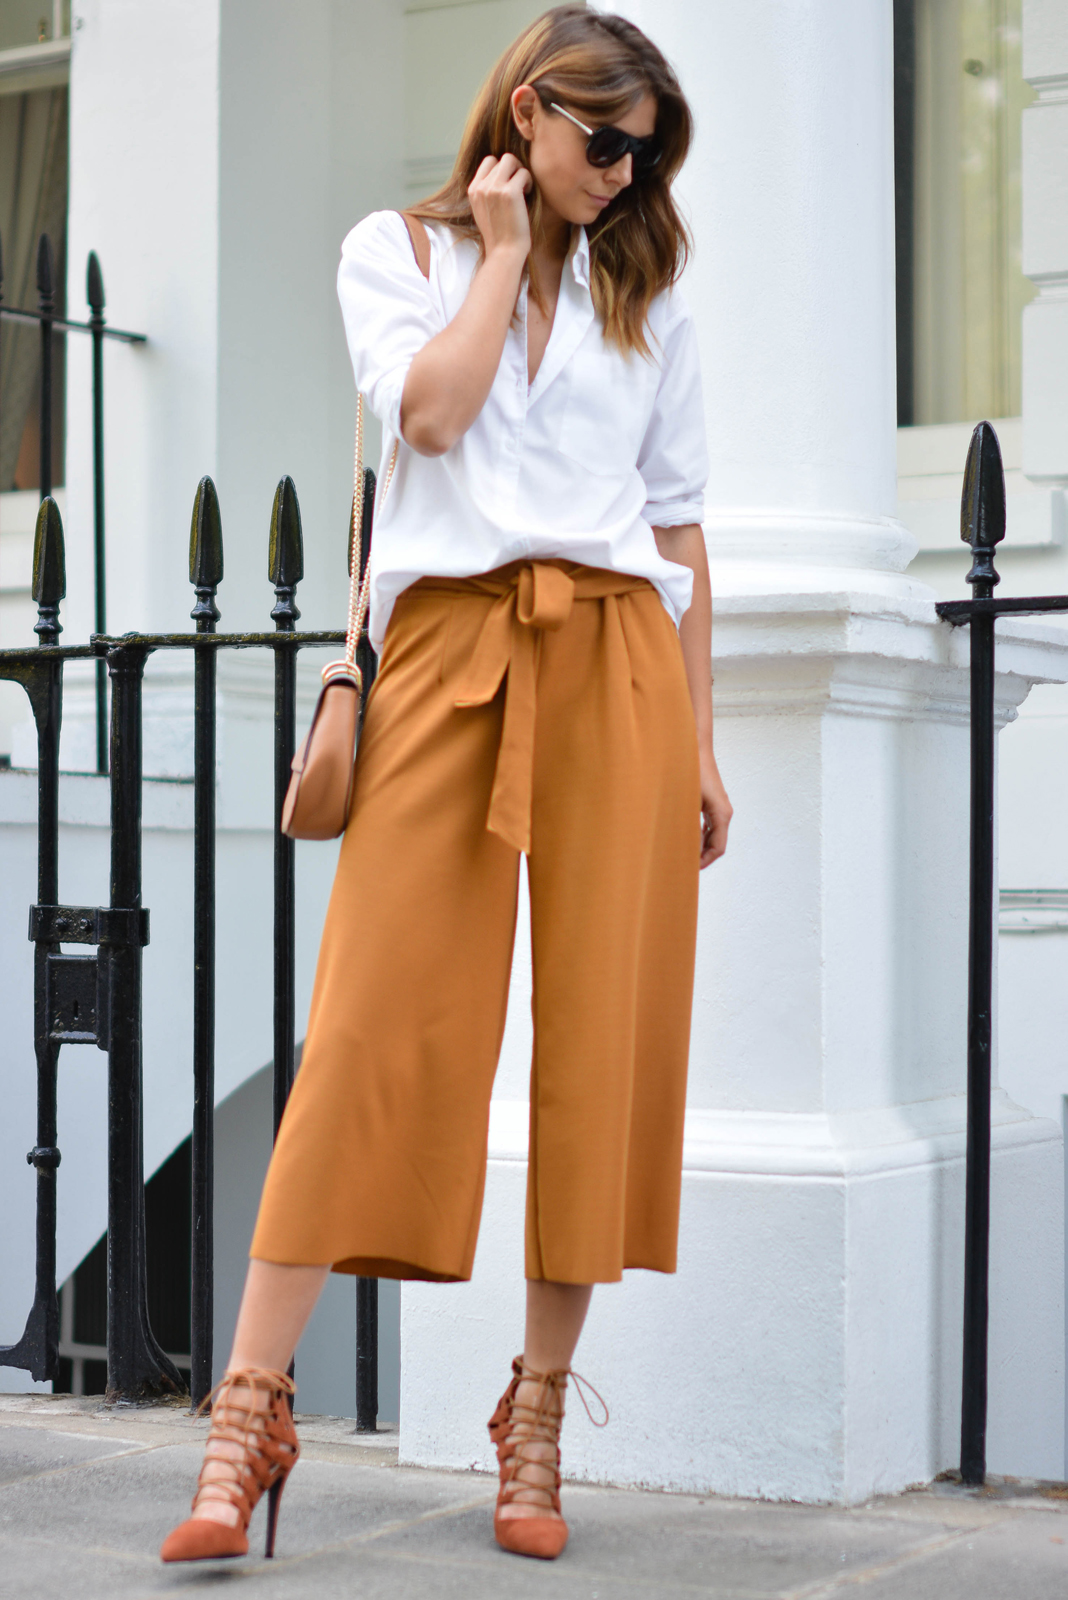 EJSTYLE wears tan culottes, white shirt, forever 21 chloe drew style bag, flat top sunglasses, missguided rust lace up heels, OOTD